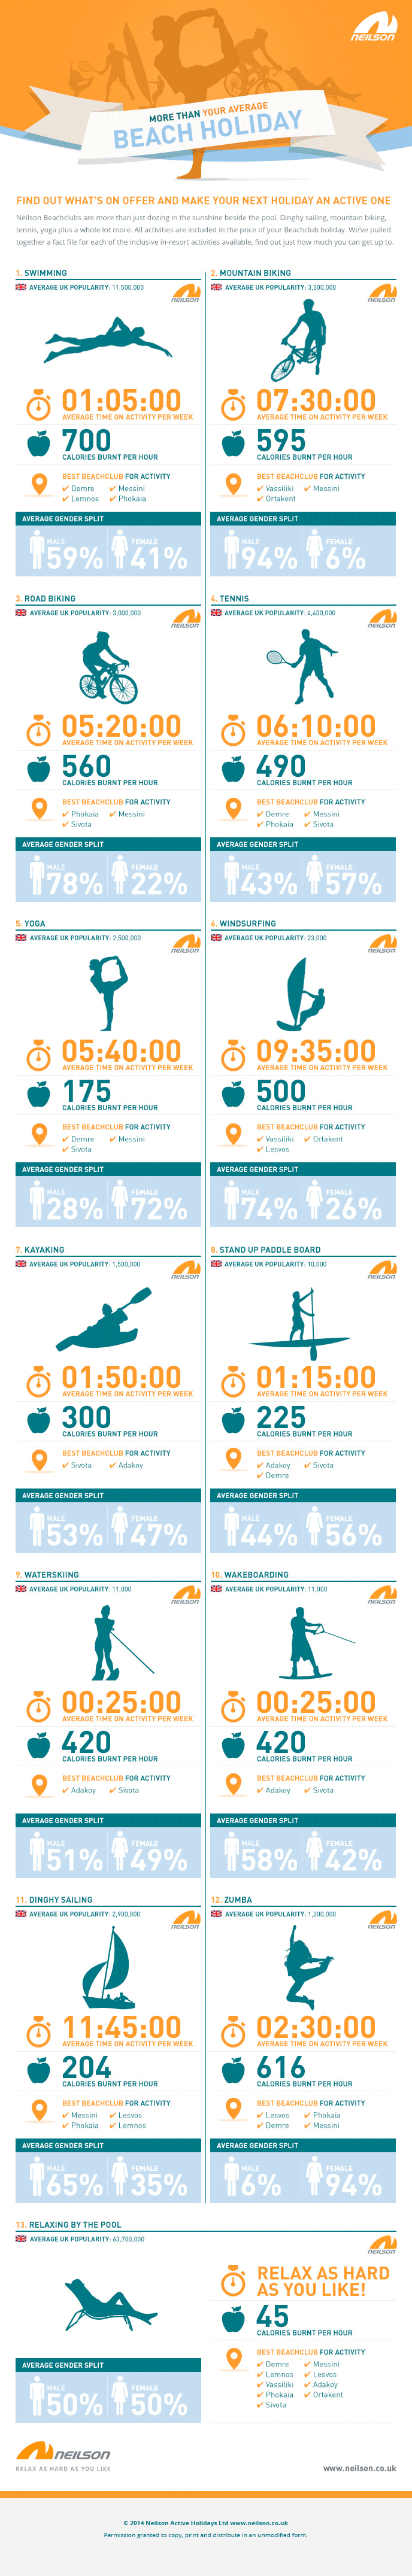 Greece activities infographic